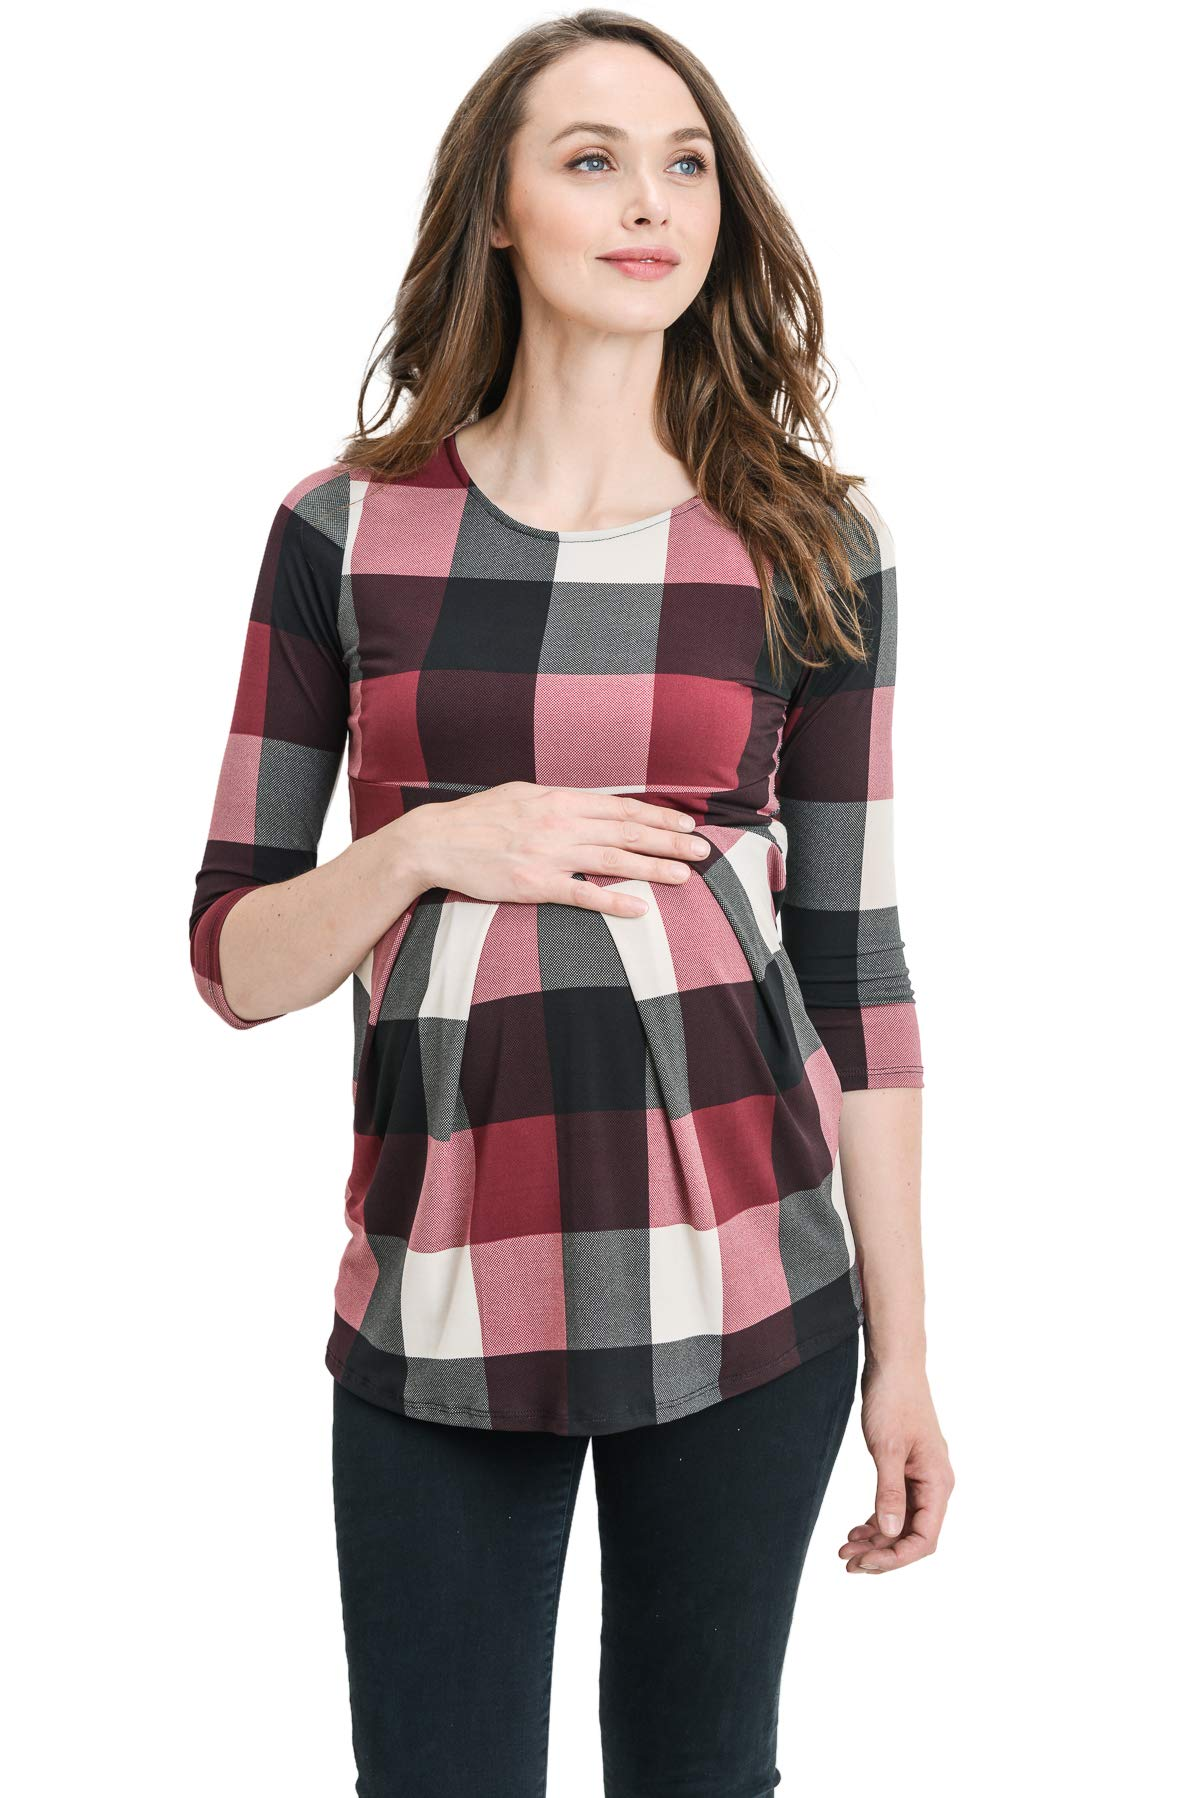 LaClef Women's Round Neck 3/4 Sleeve Front Pleat Peplum Maternity Top (Burgundy Plaid, L)